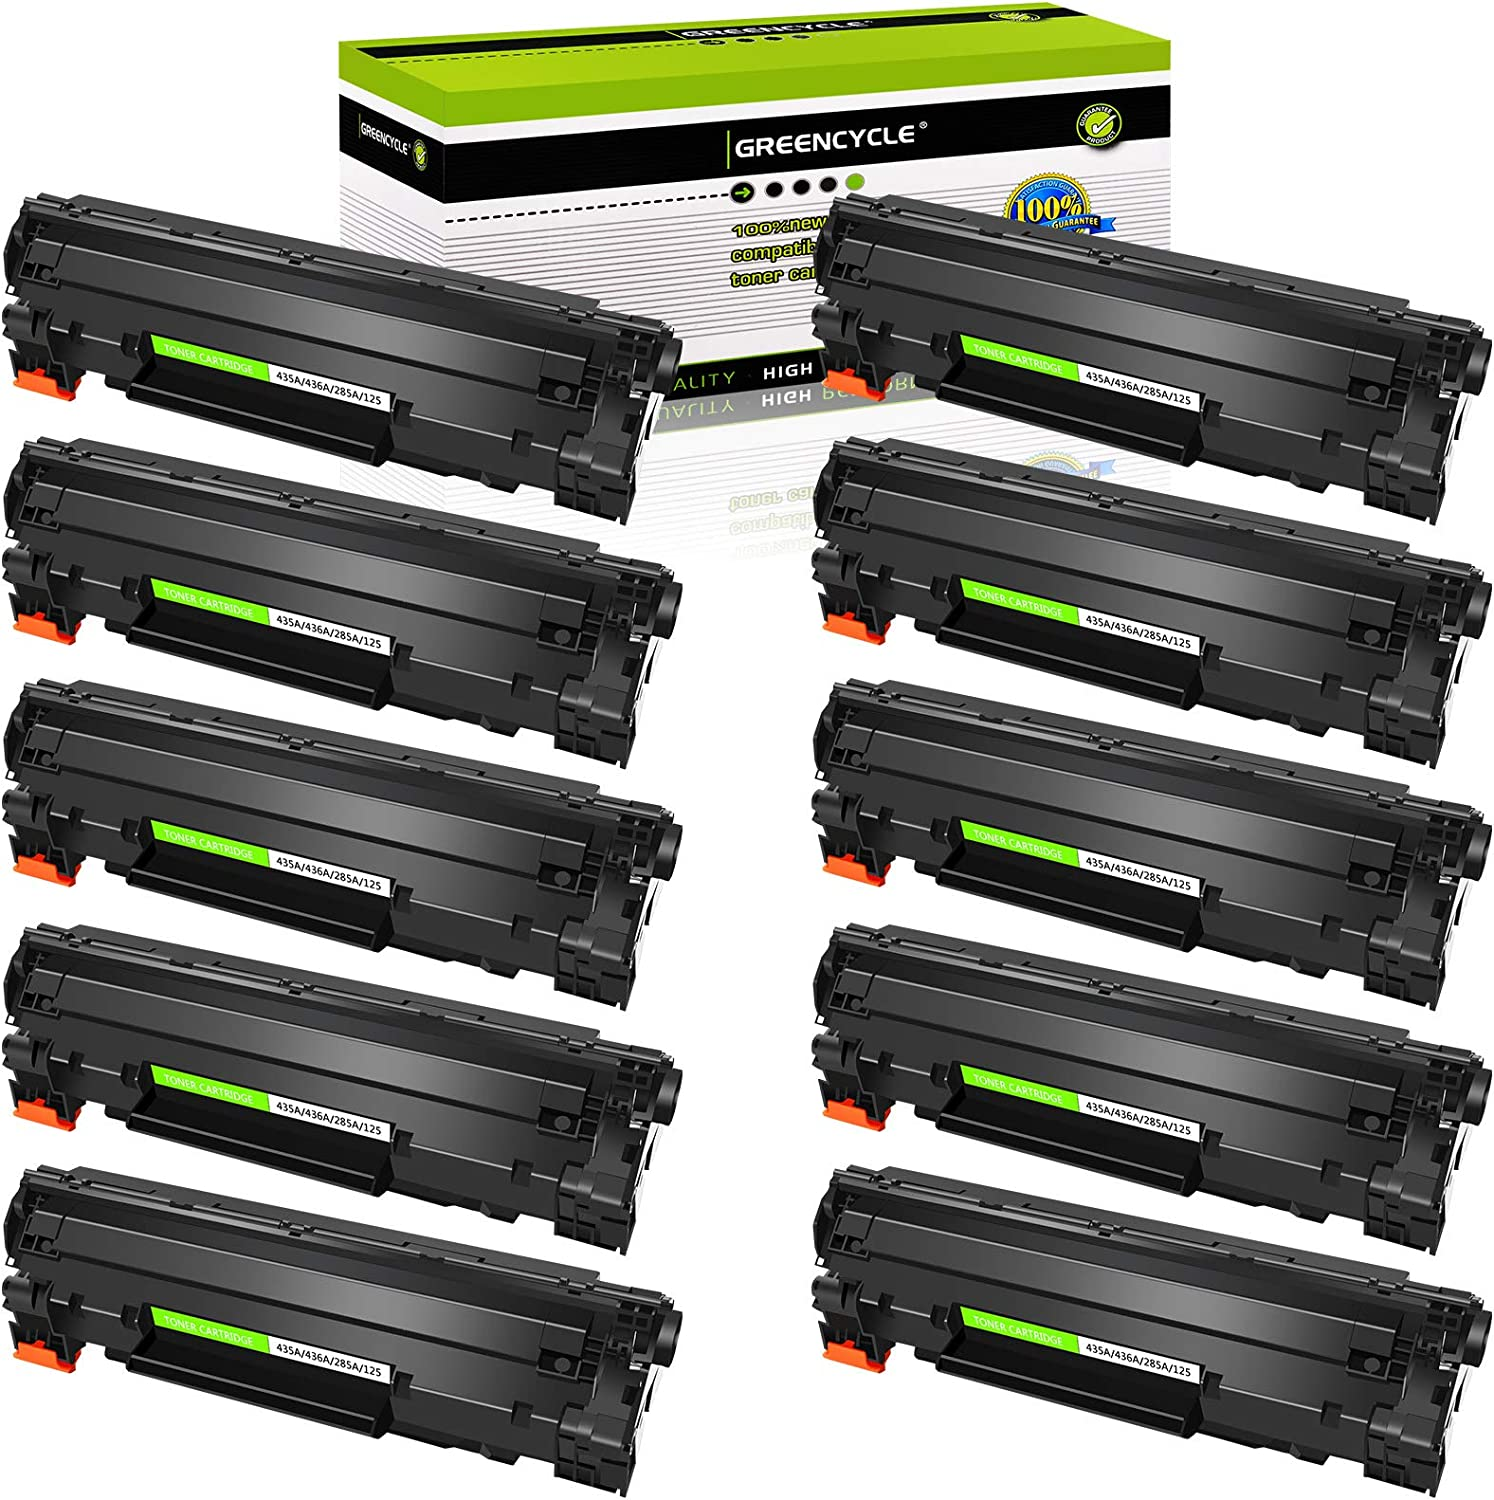 CE285A Black 85A Printer Cartridge 1-Pack Compatible High Yield Laserjet Pro M1132 M1212 Laser Printer Toner Cartridge Replacement for HP